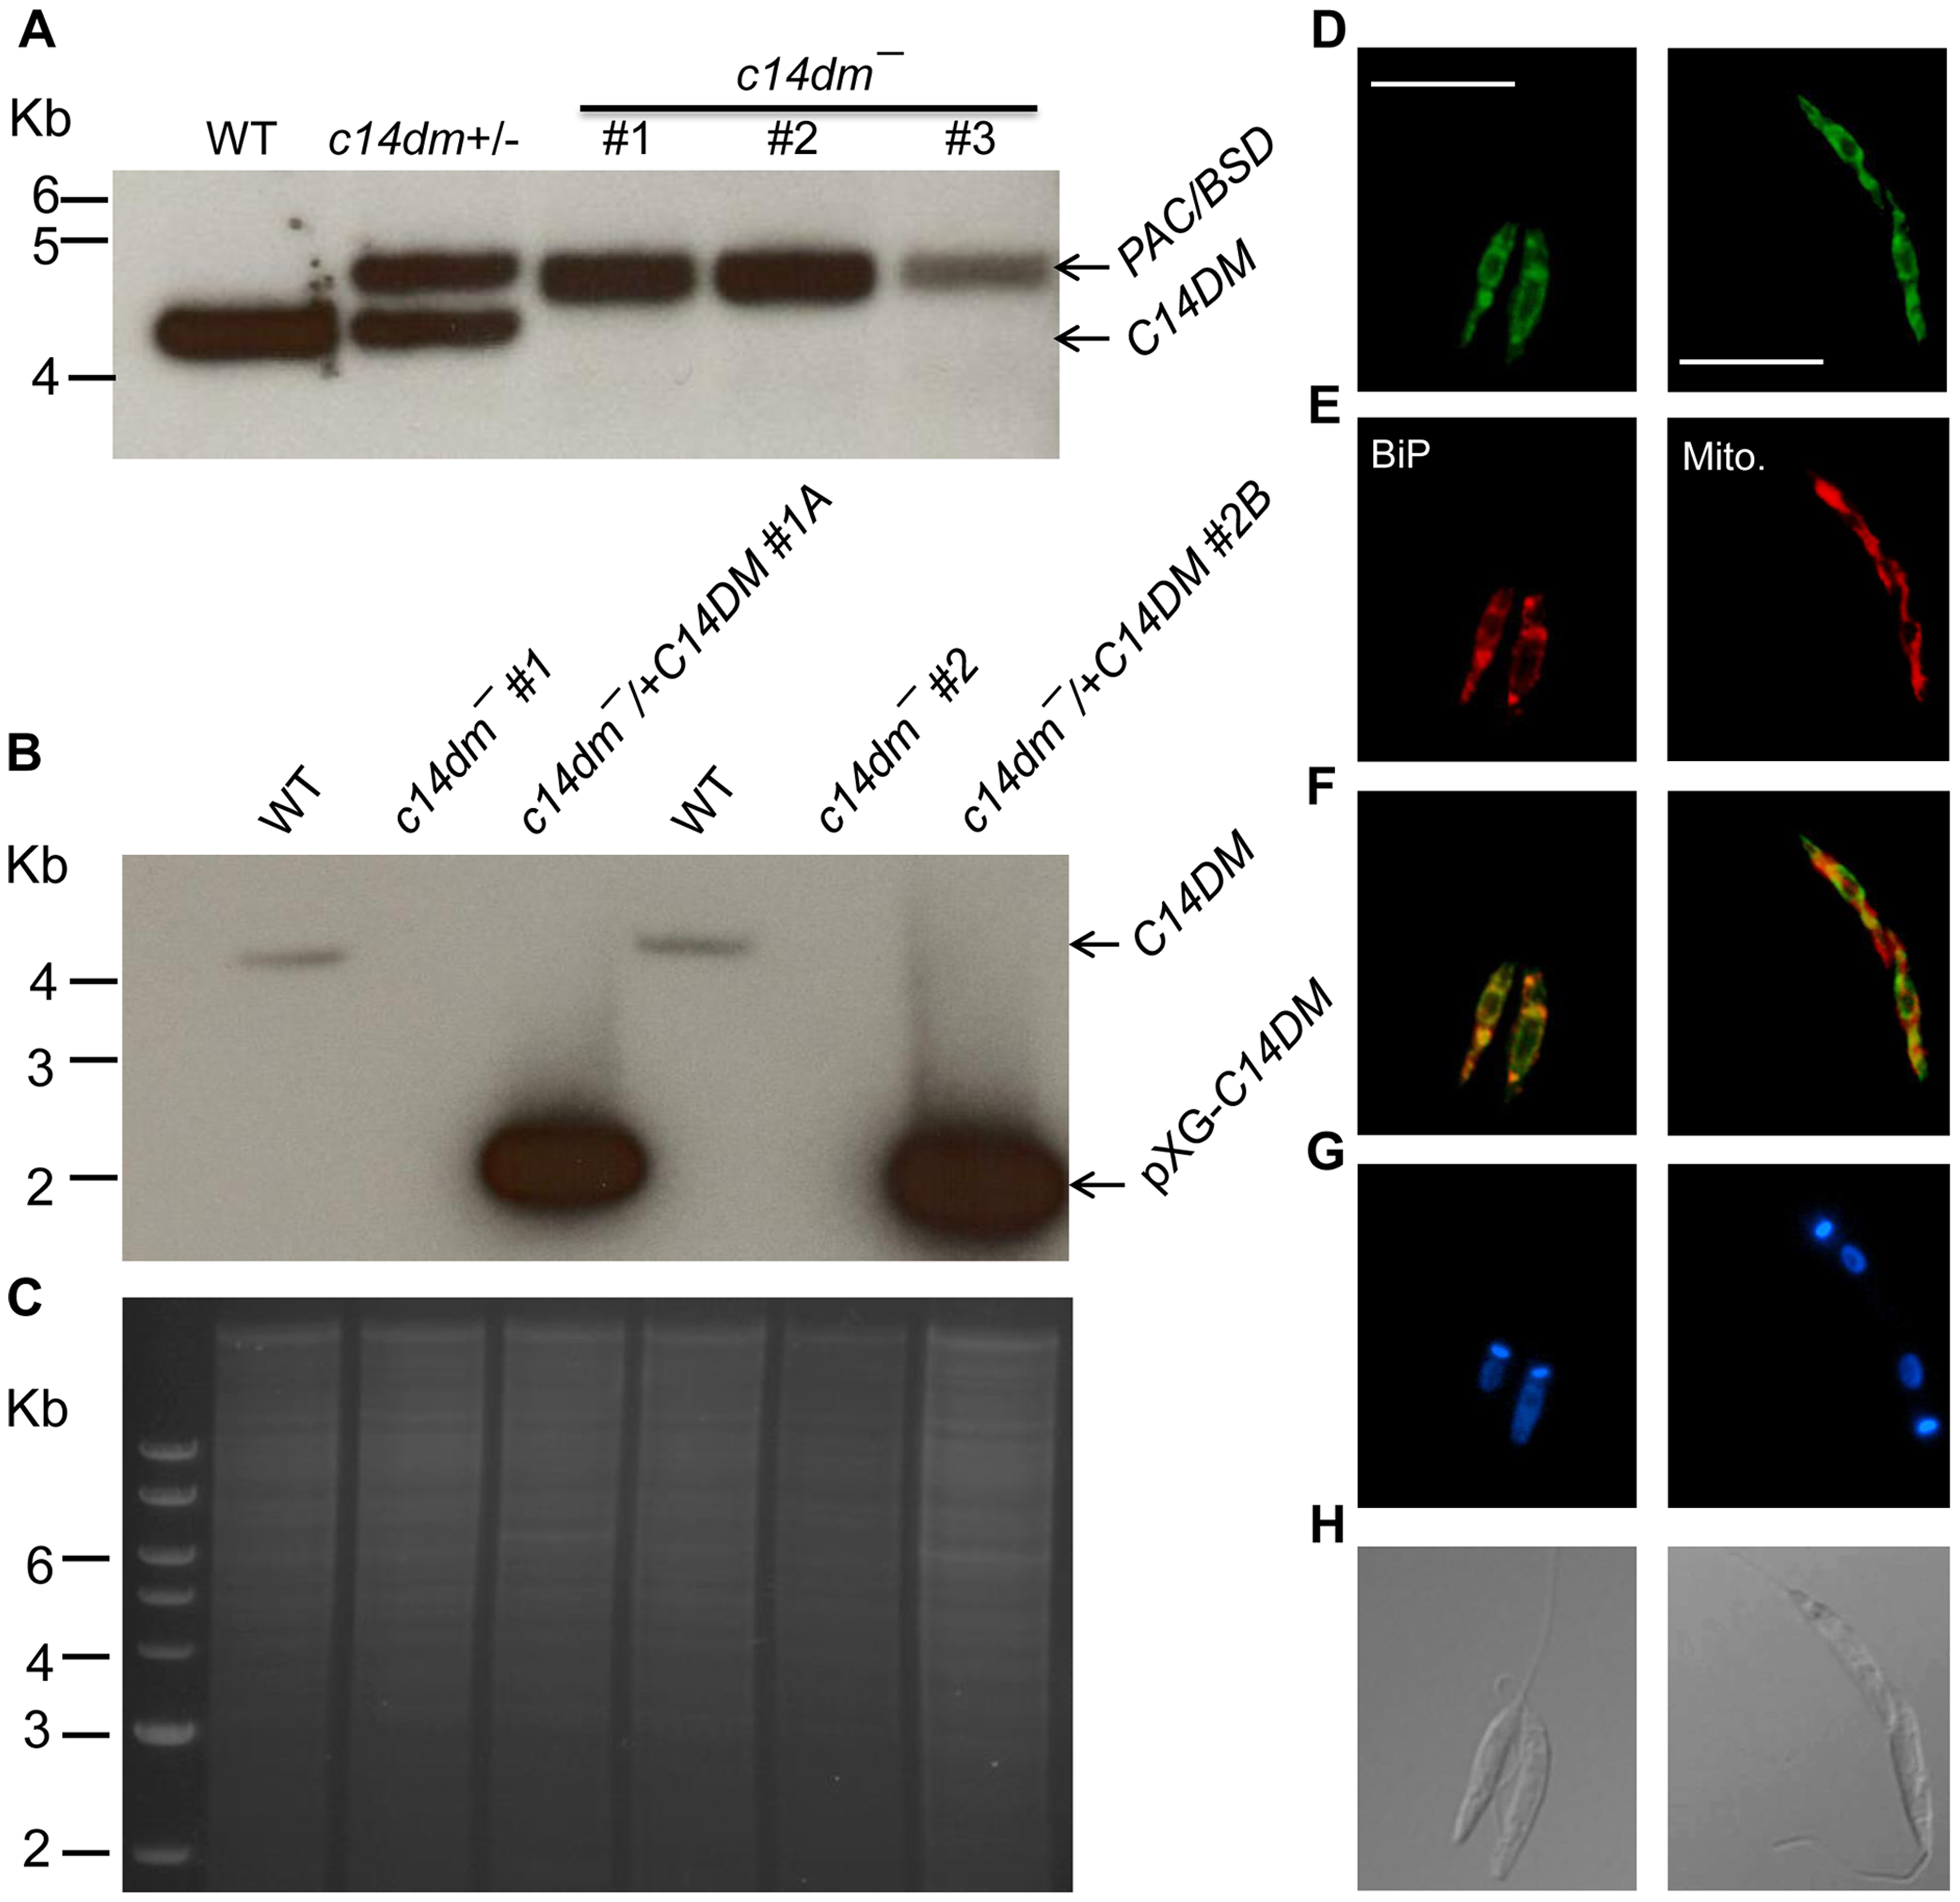 Targeted deletion and cellular localization of C14DM.